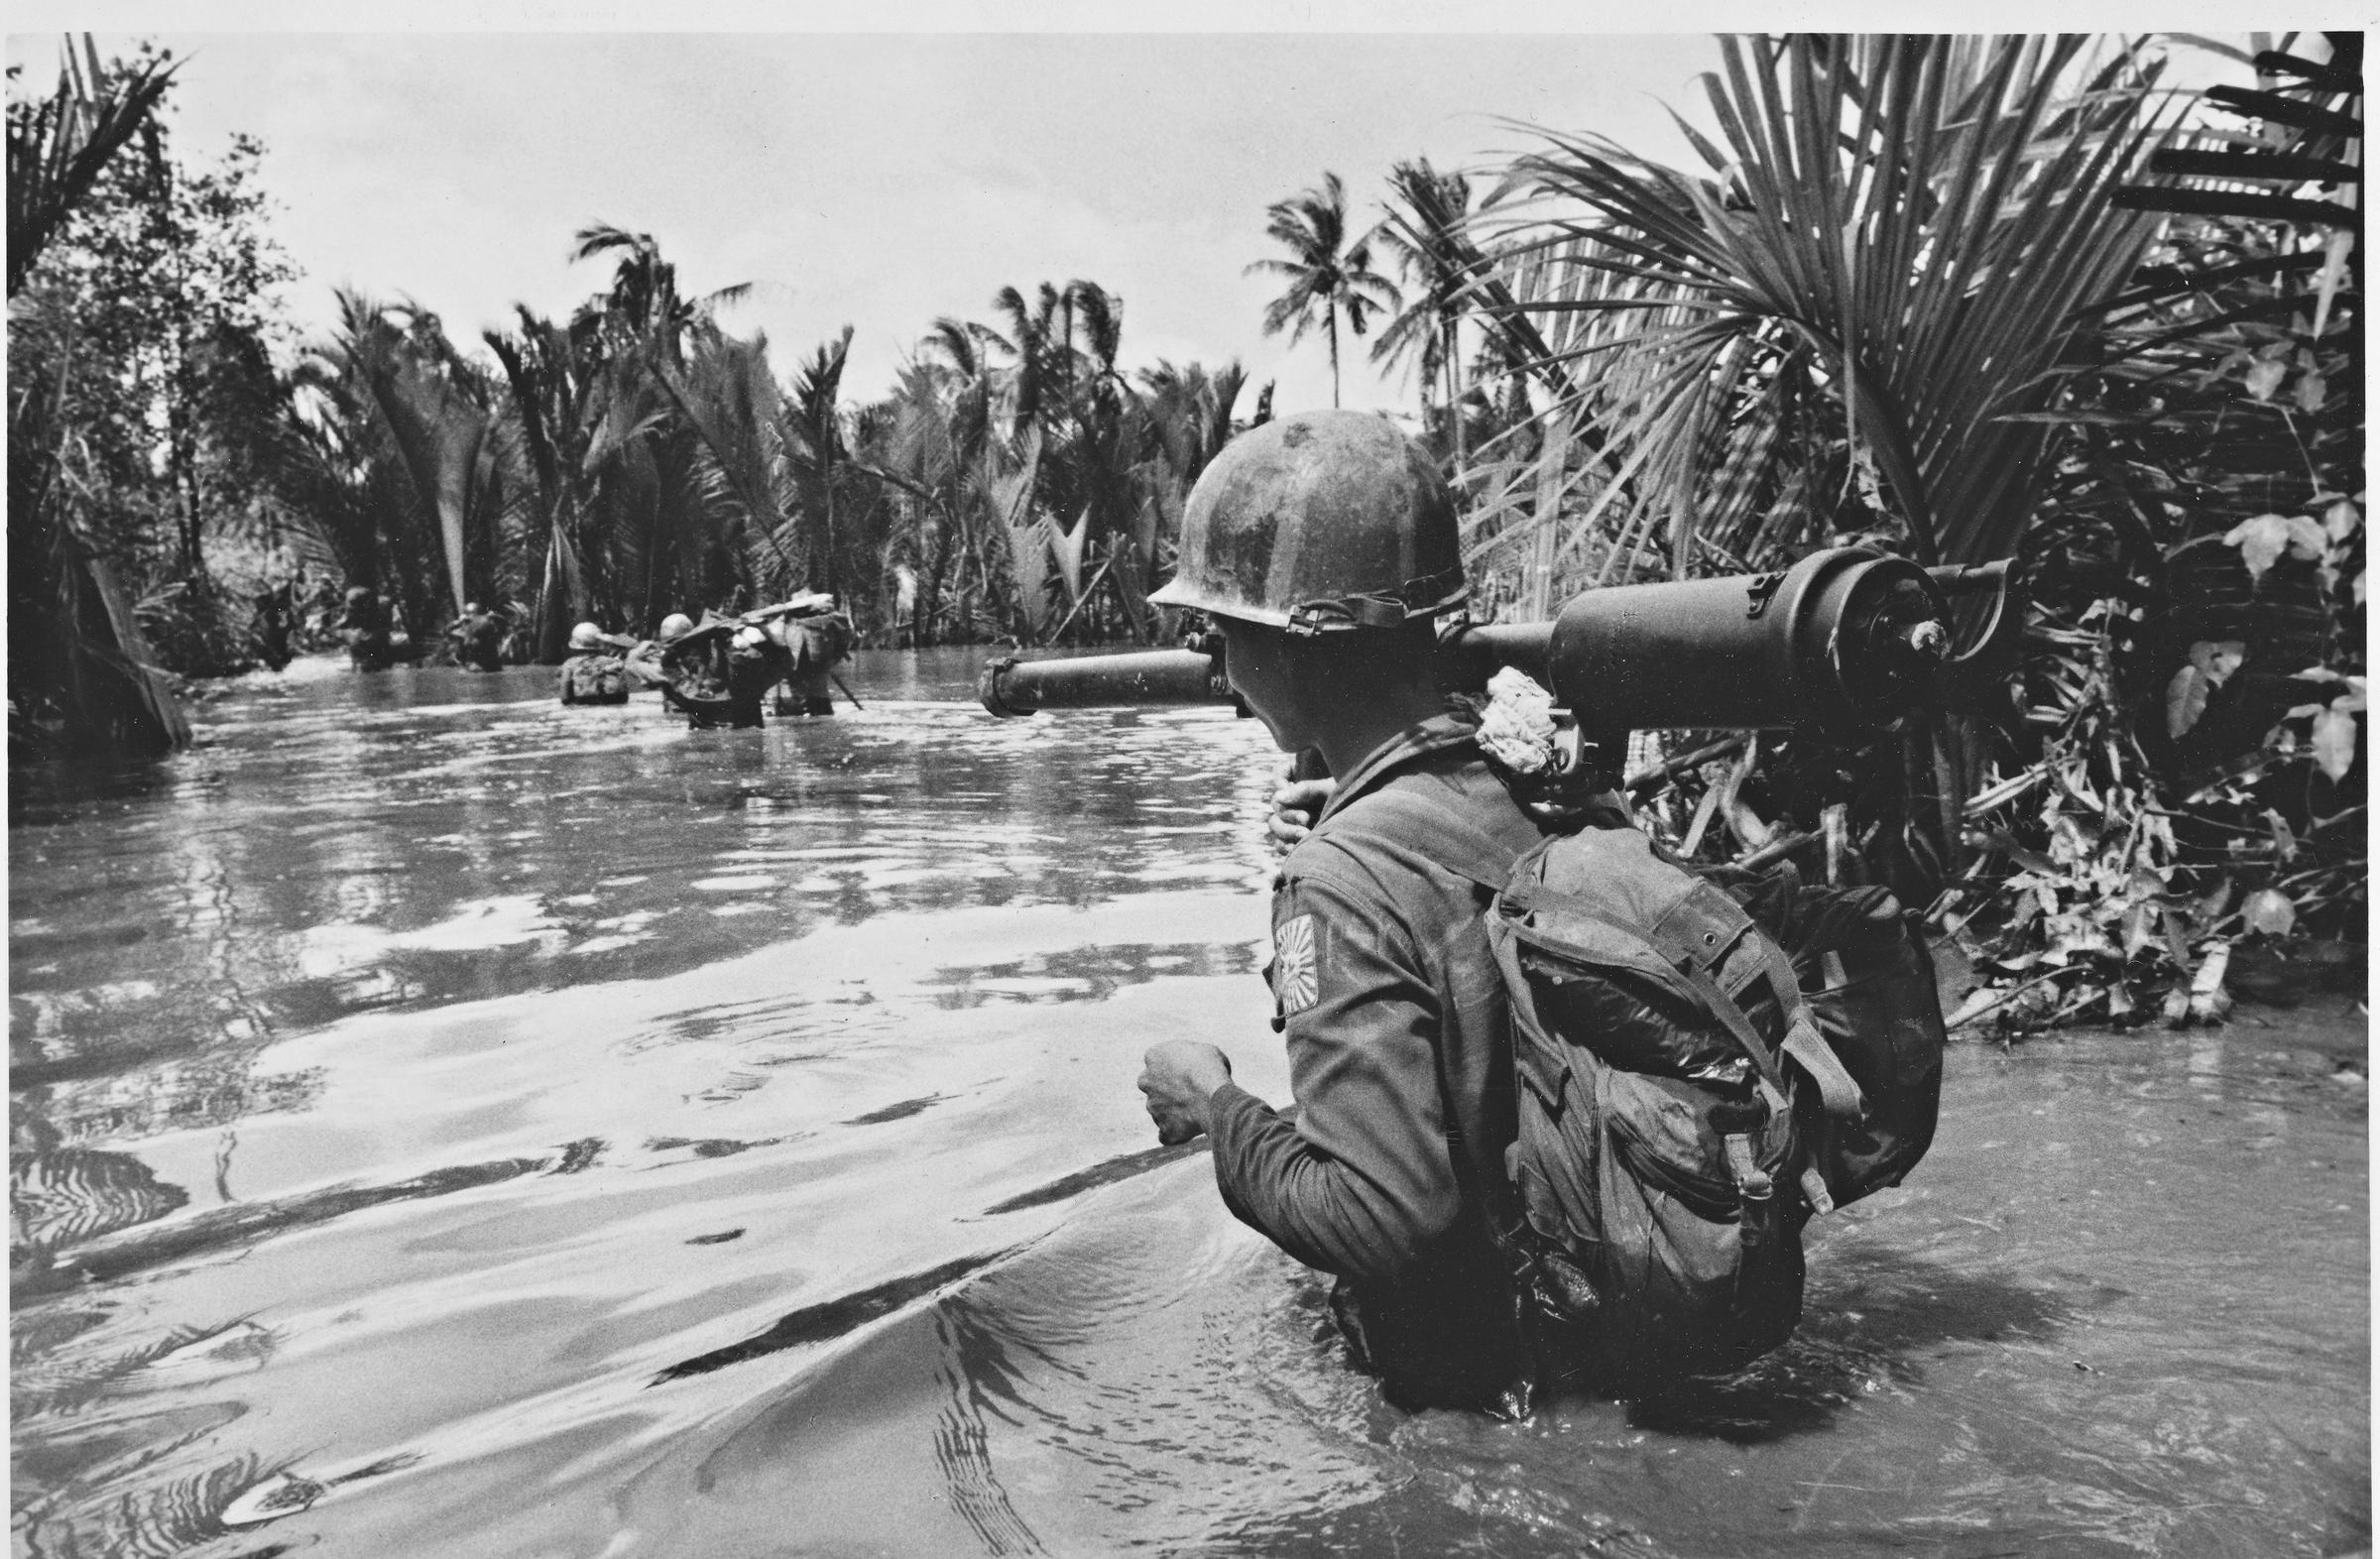 vietnam war the war option The vietnam war was supported by younger americans to a significantly higher degree than older americans and world war ii veterans d there was nearly universal support for the vietnam war among the american public.